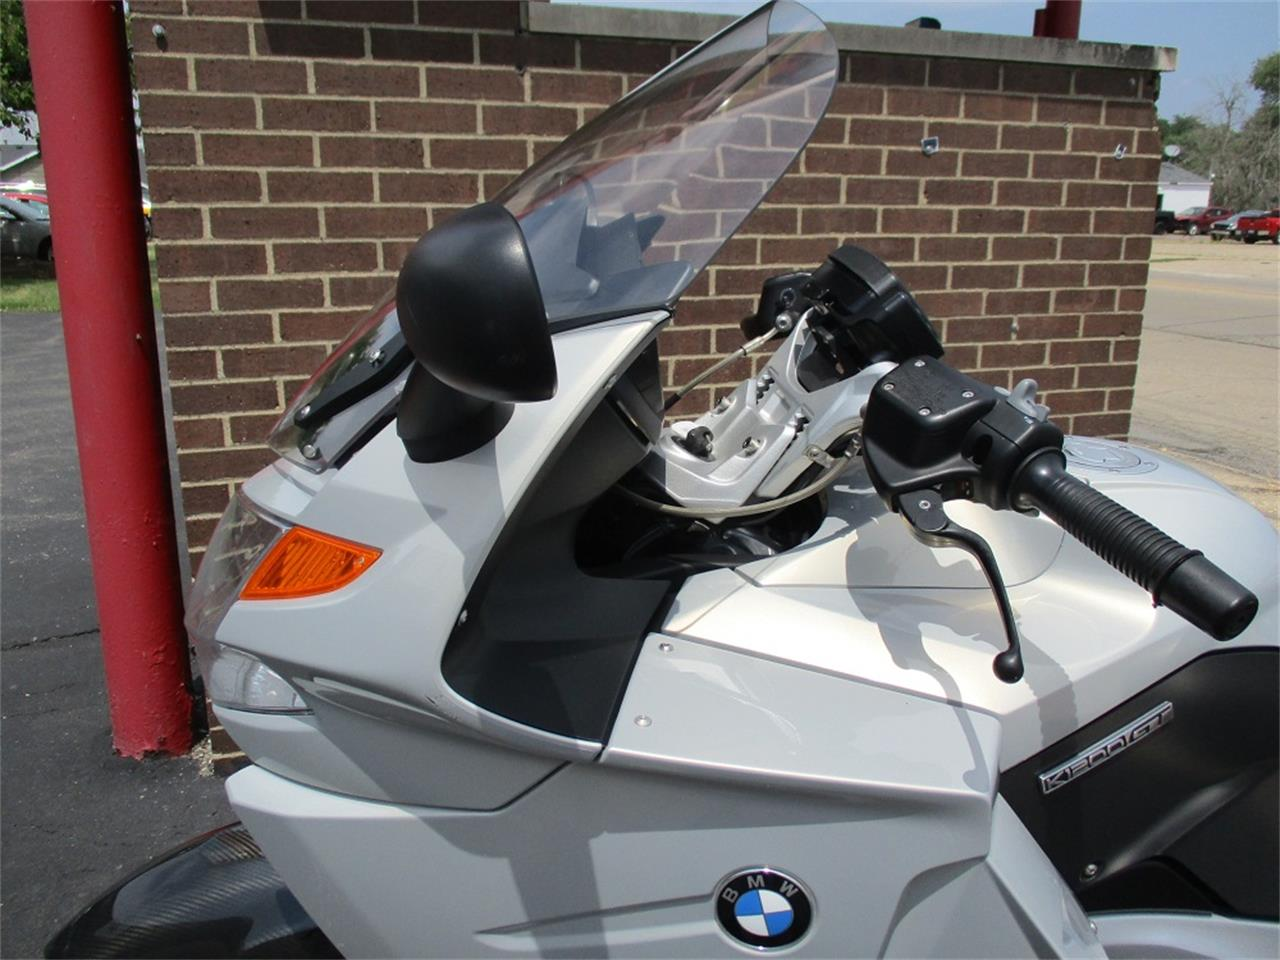 2007 BMW K1200 (CC-1241923) for sale in Sterling, Illinois